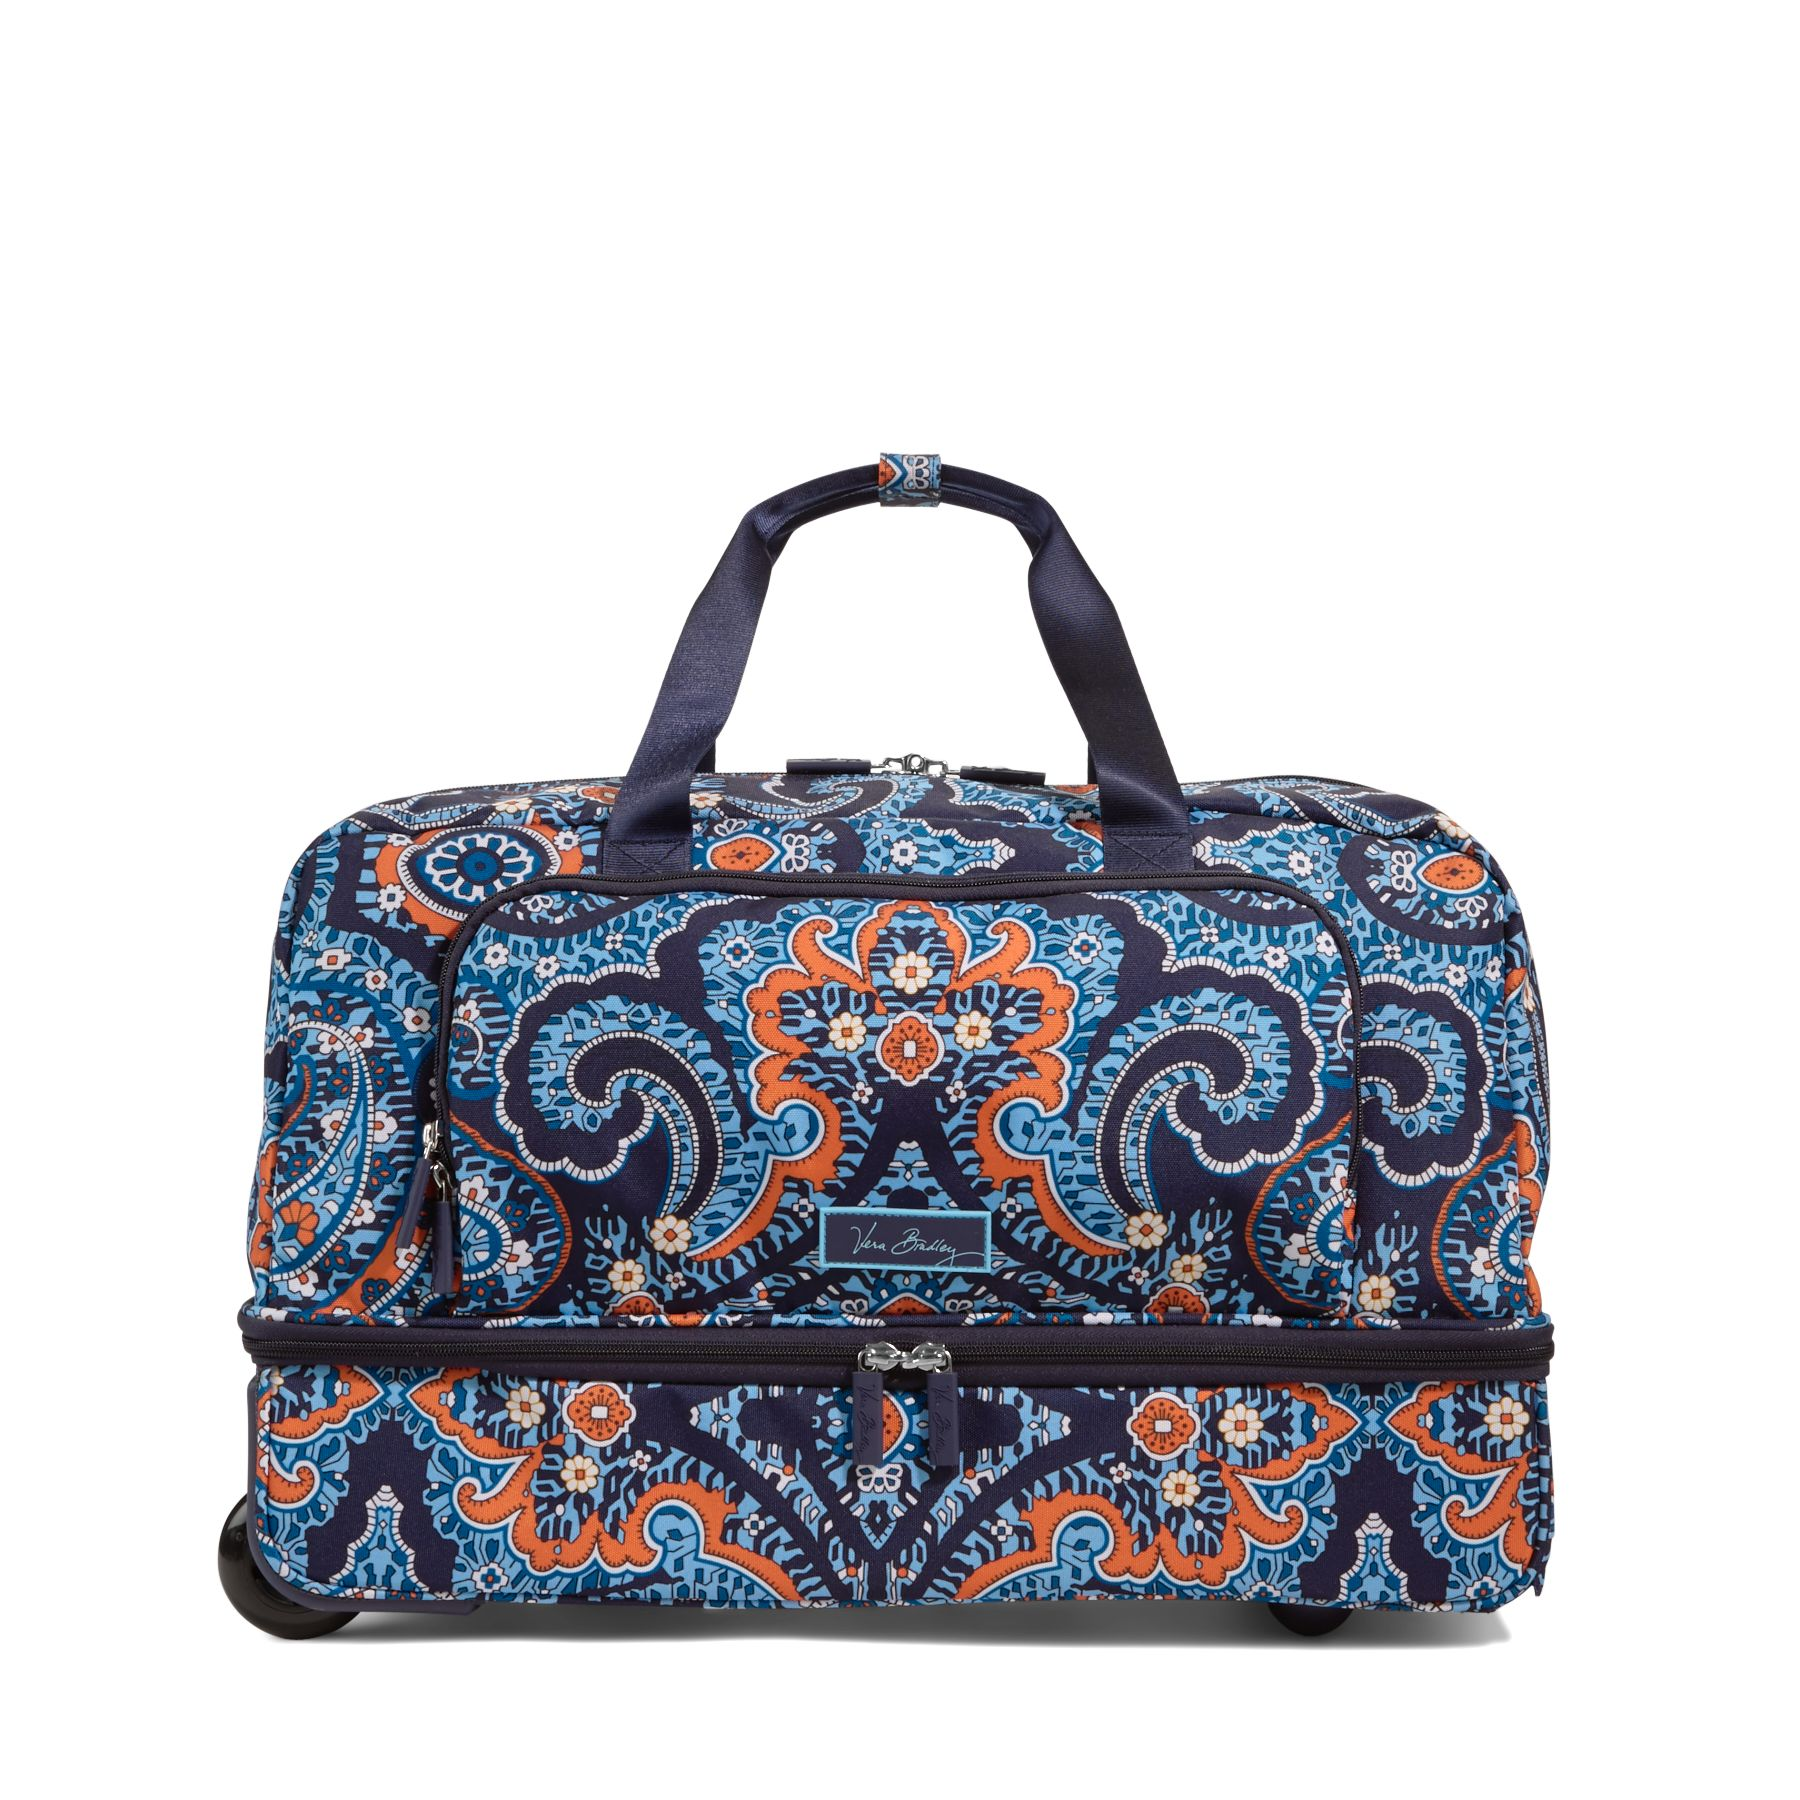 8a394921b0cc ... UPC 886003298718 product image for Vera Bradley Lighten Up Wheeled Carry  On in Marrakesh